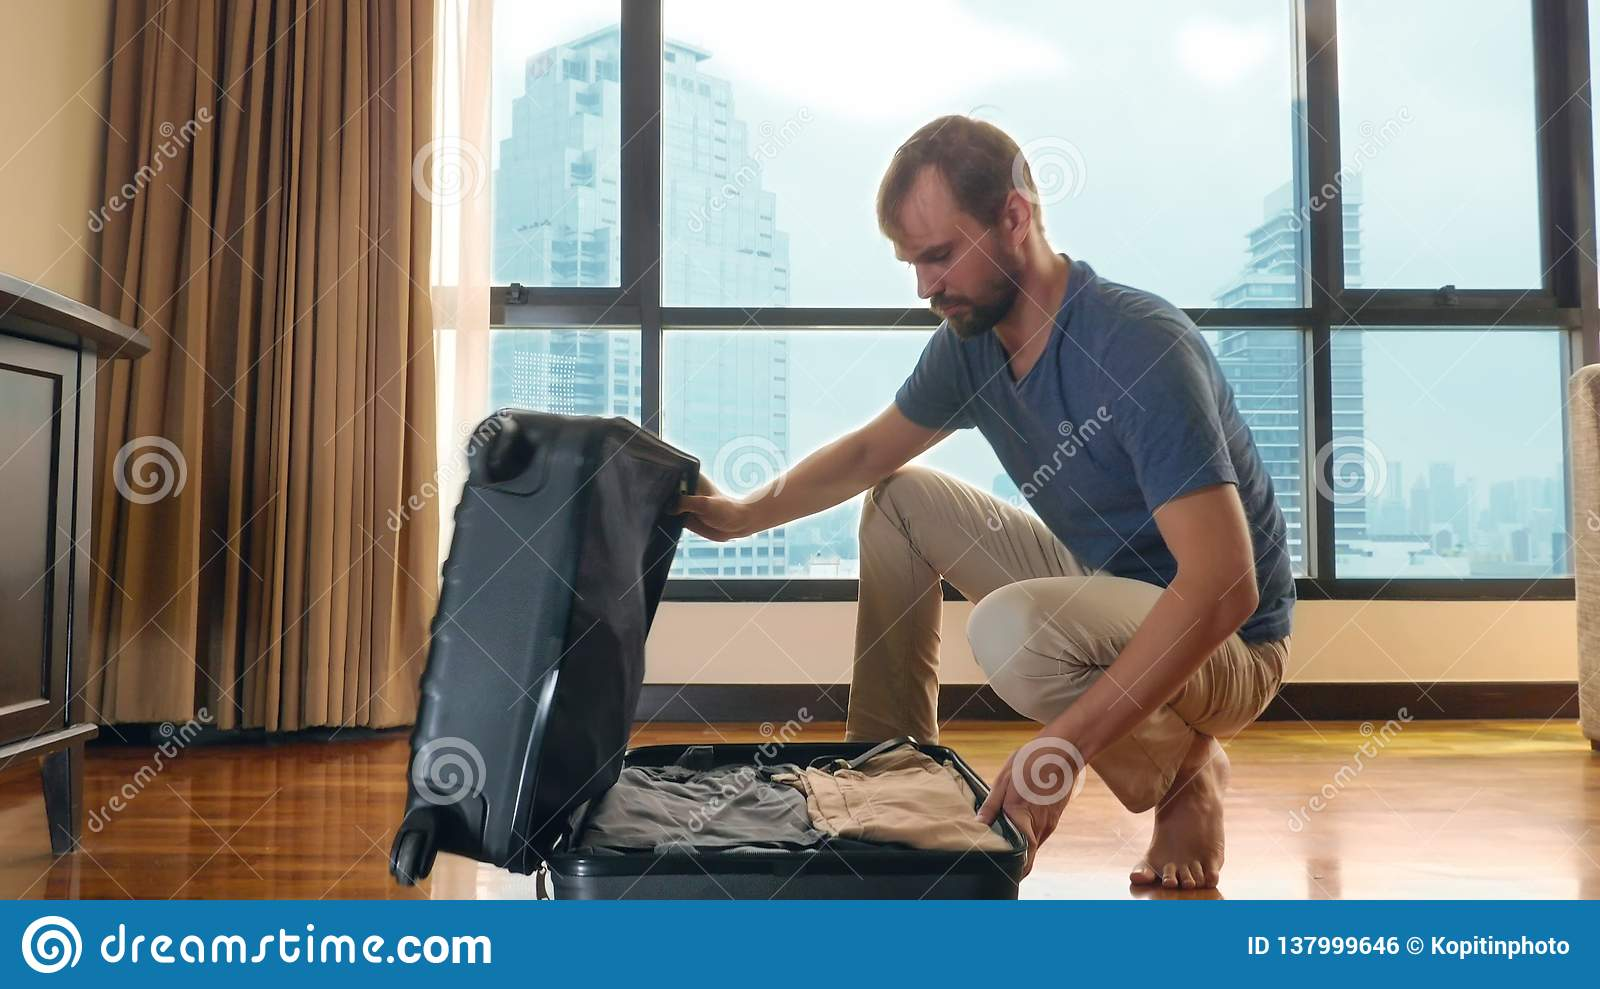 Handsome man packs a suitcase in a room with a panoramic window overlooking the skyscrapers